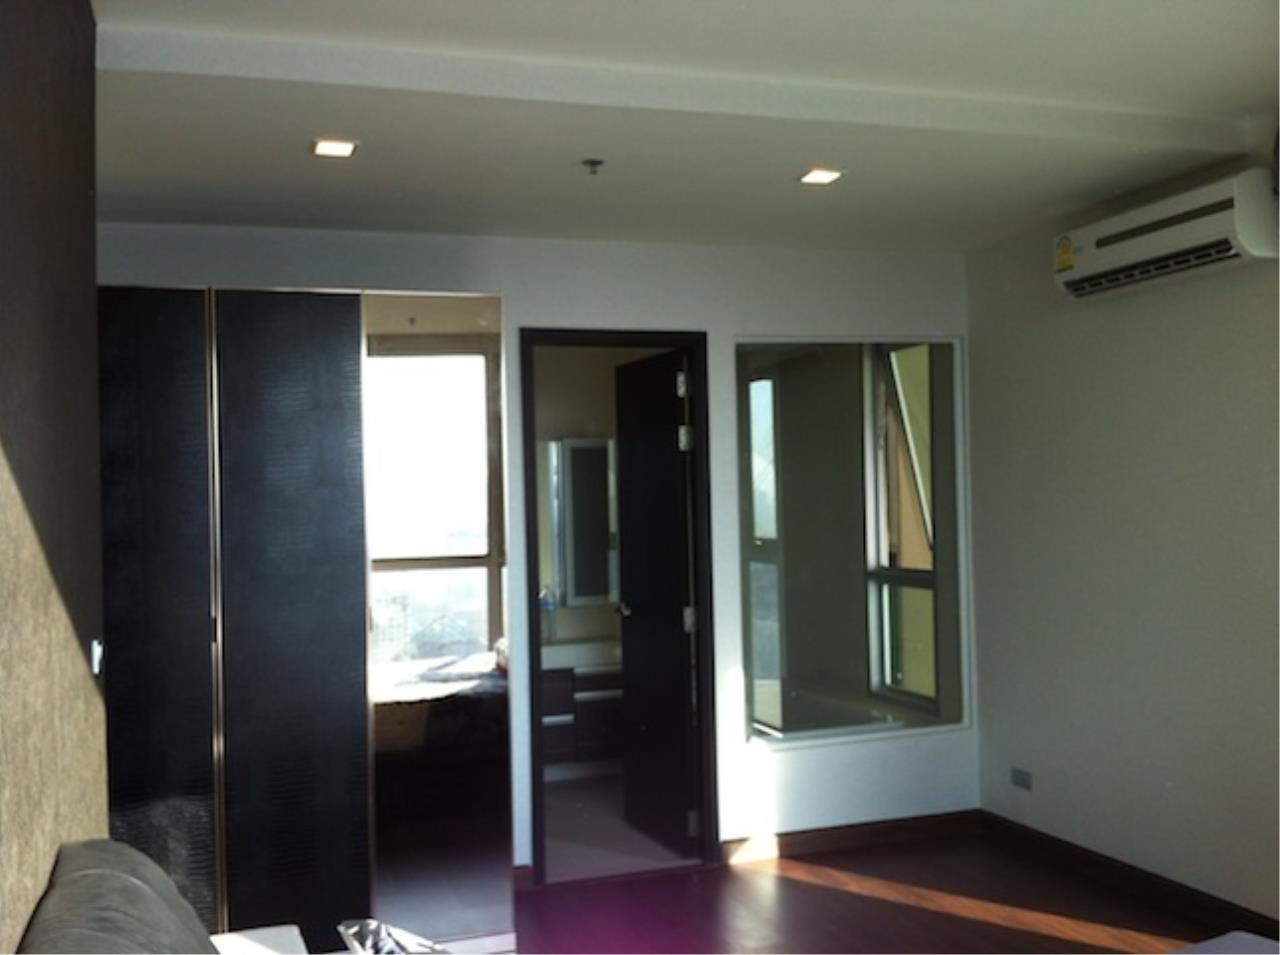 Quality Life Property Agency's Condo 1 Bedroom For Rent and For Sale  At Sky walk  35 ,  2